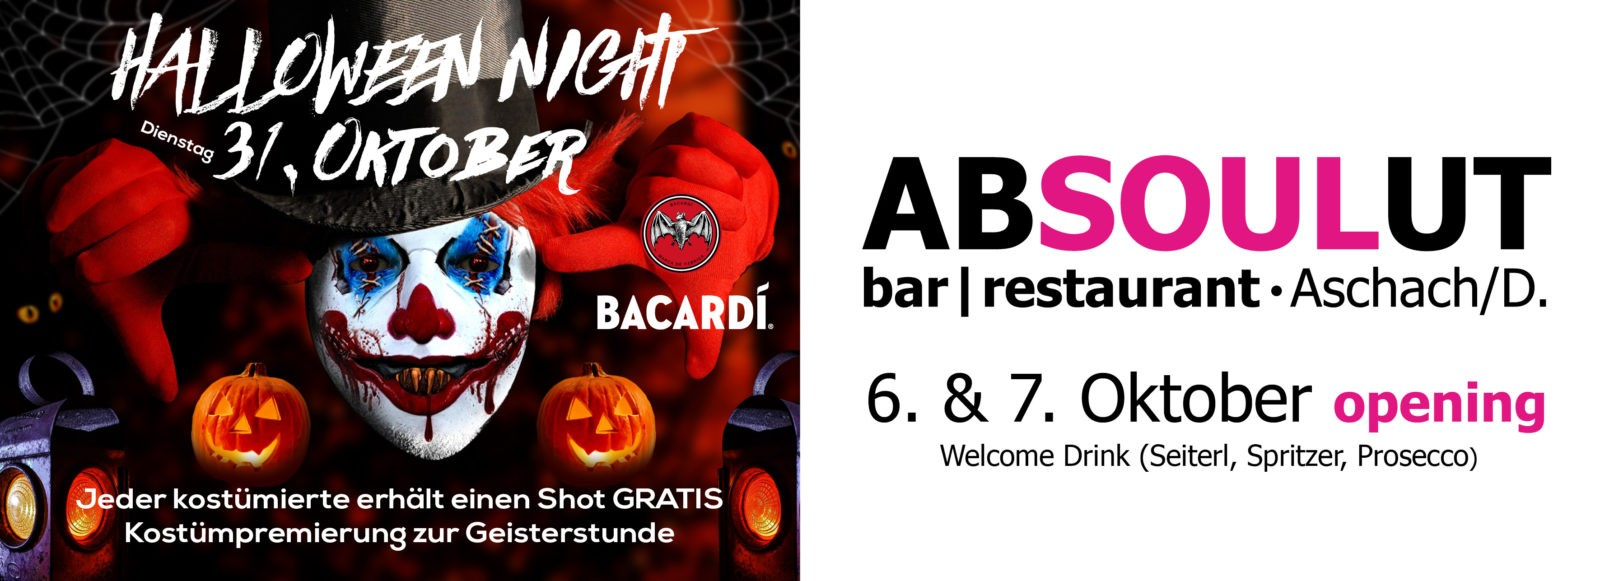 Absolut Bar Restaurant Events - opening